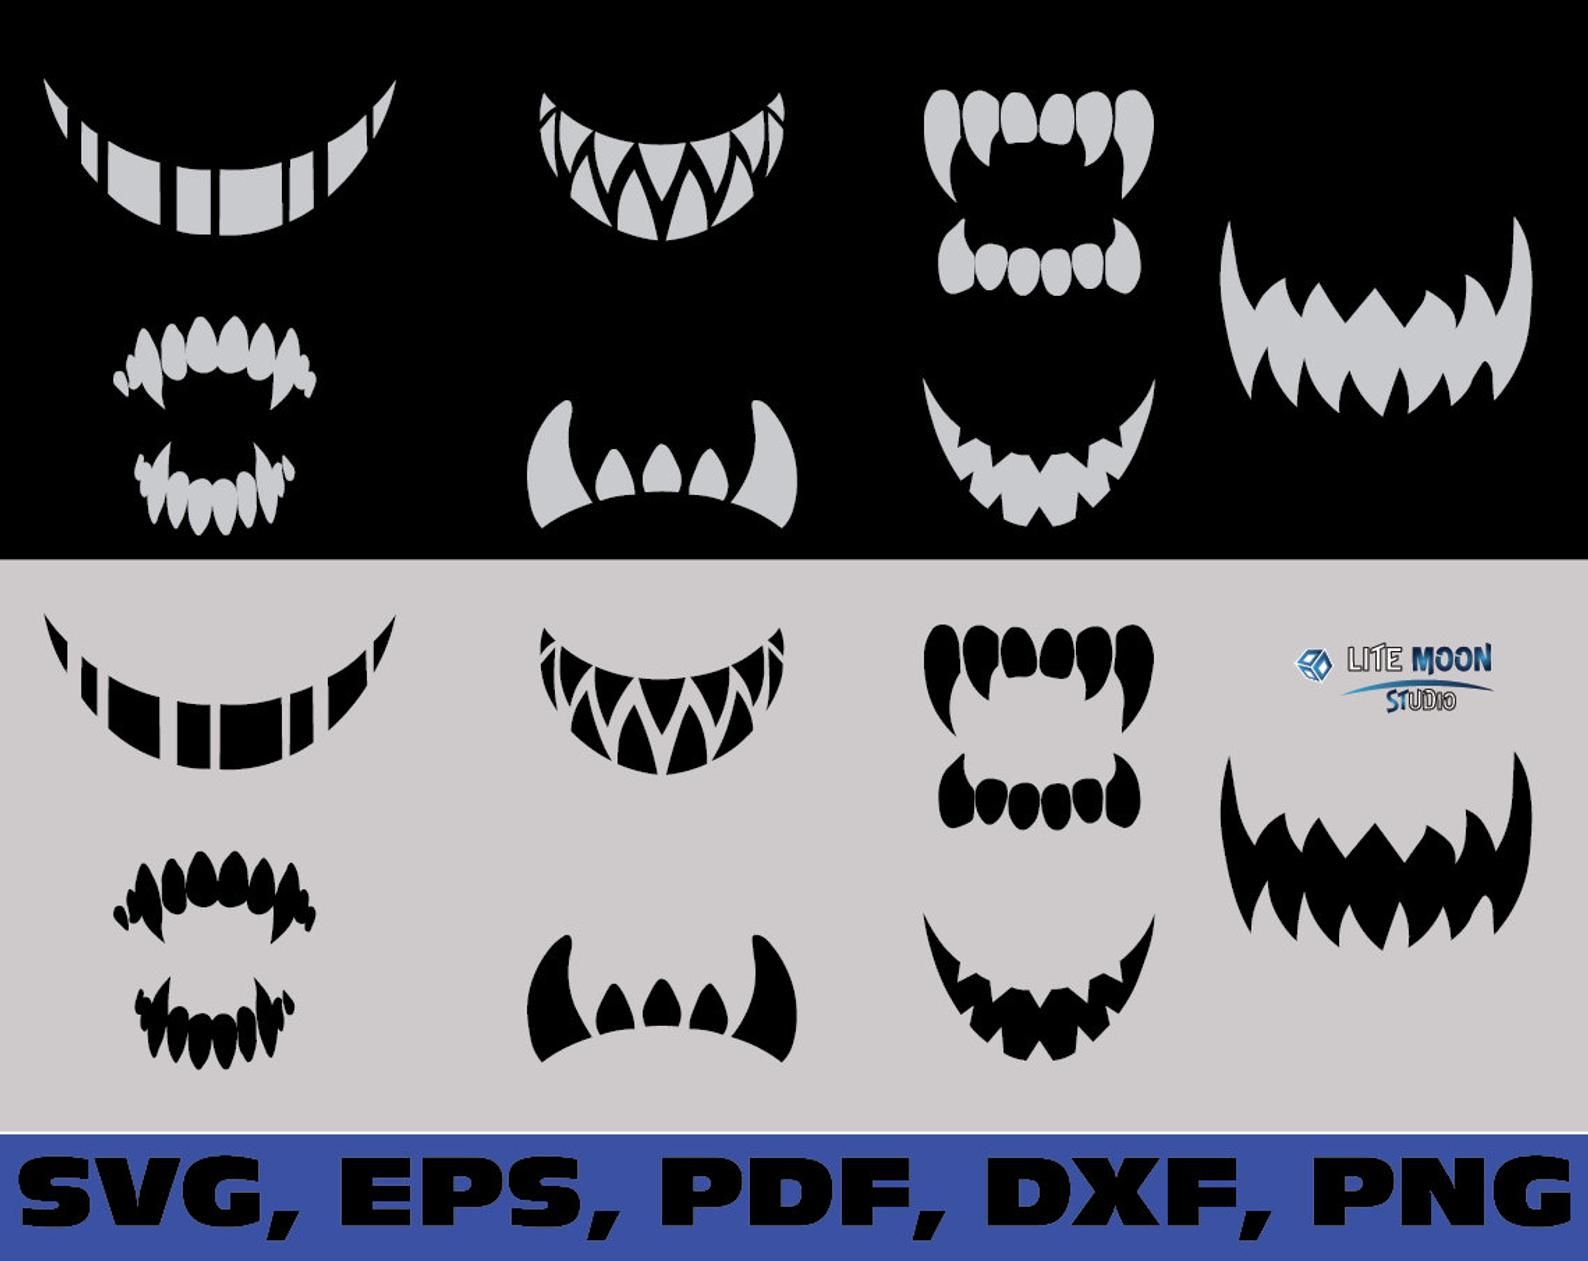 Scary Fangs And Teeth Svg Custom Face Mask Svg Scary Mouth Etsy Face Stencils Scary Faces Halloween Silhouettes